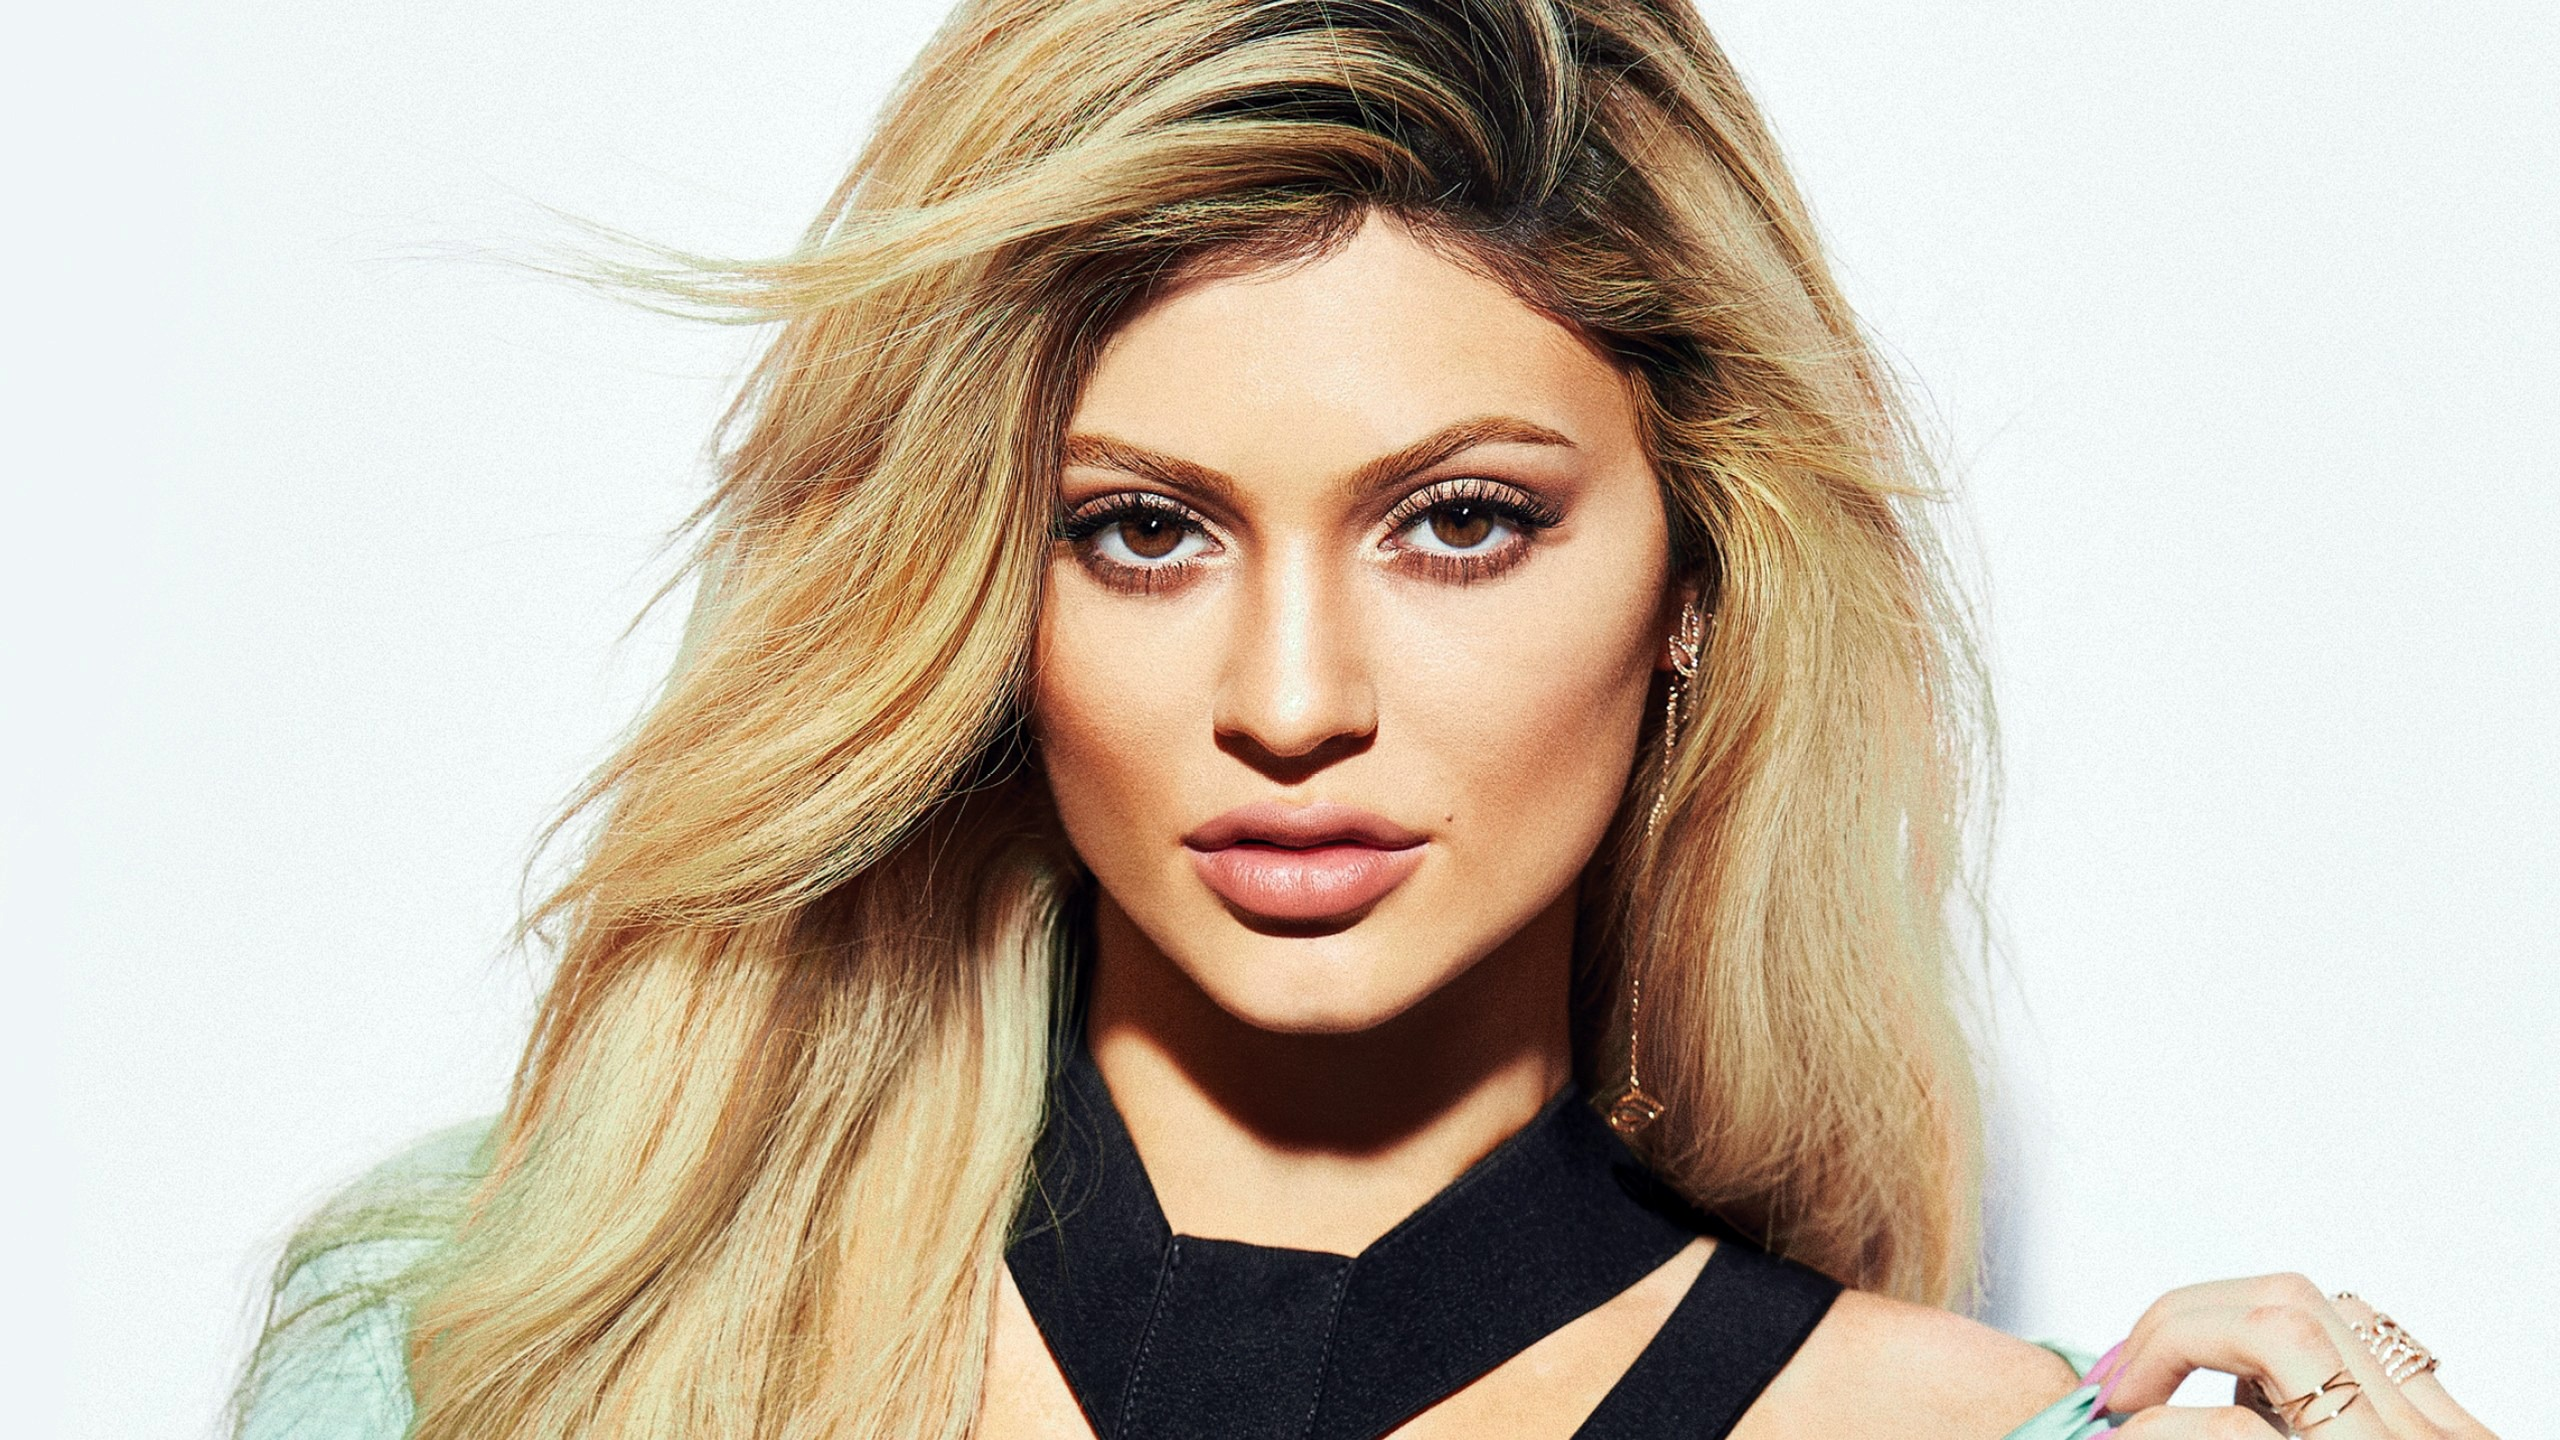 Kylie Jenner 2018 Pretty Supermodel Photo - 2560x1440 wallpaper download